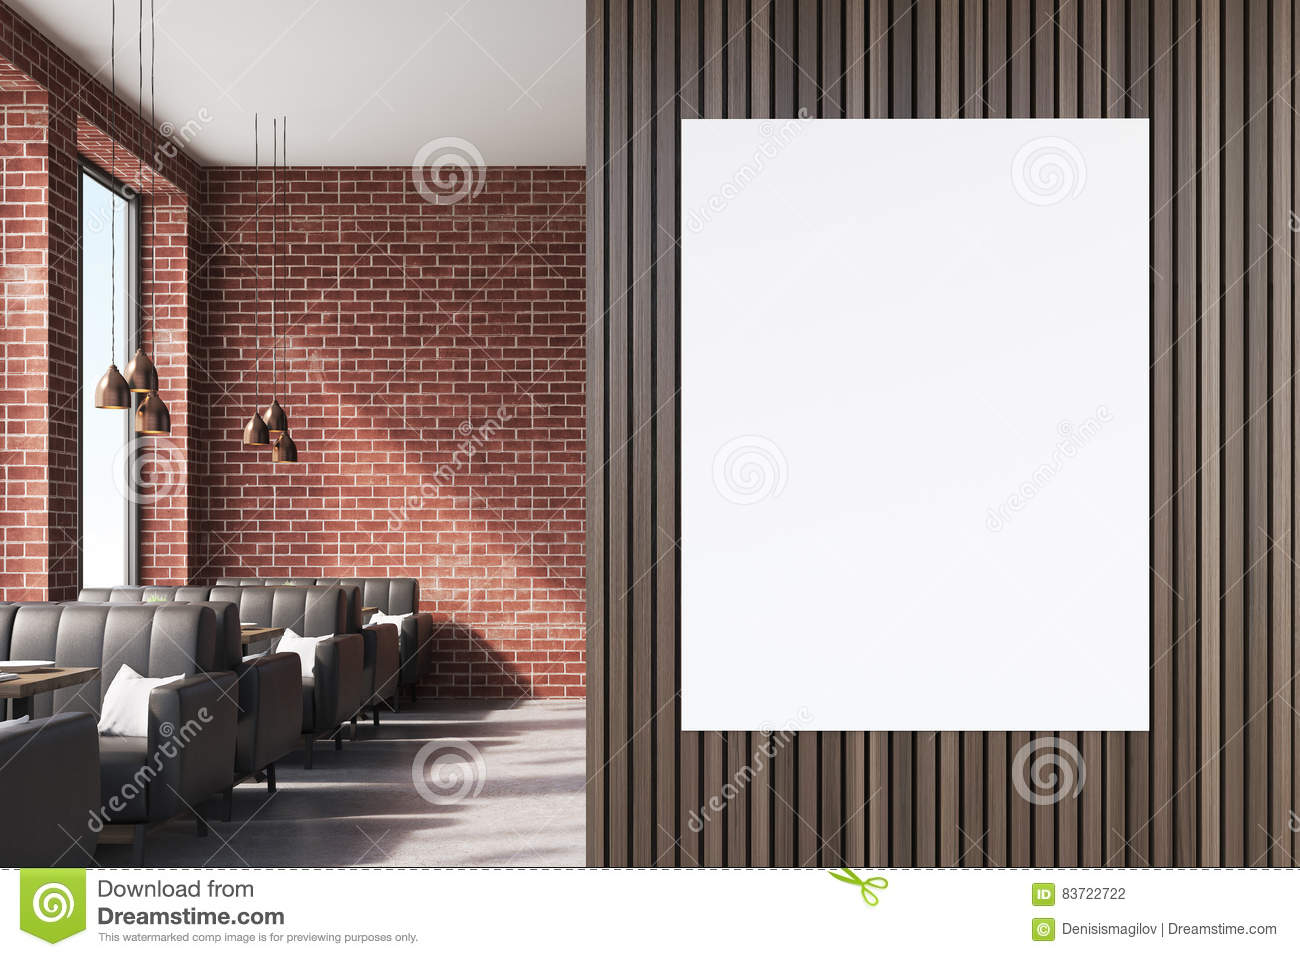 close up of a poster on brown cafe wall stock illustration - image